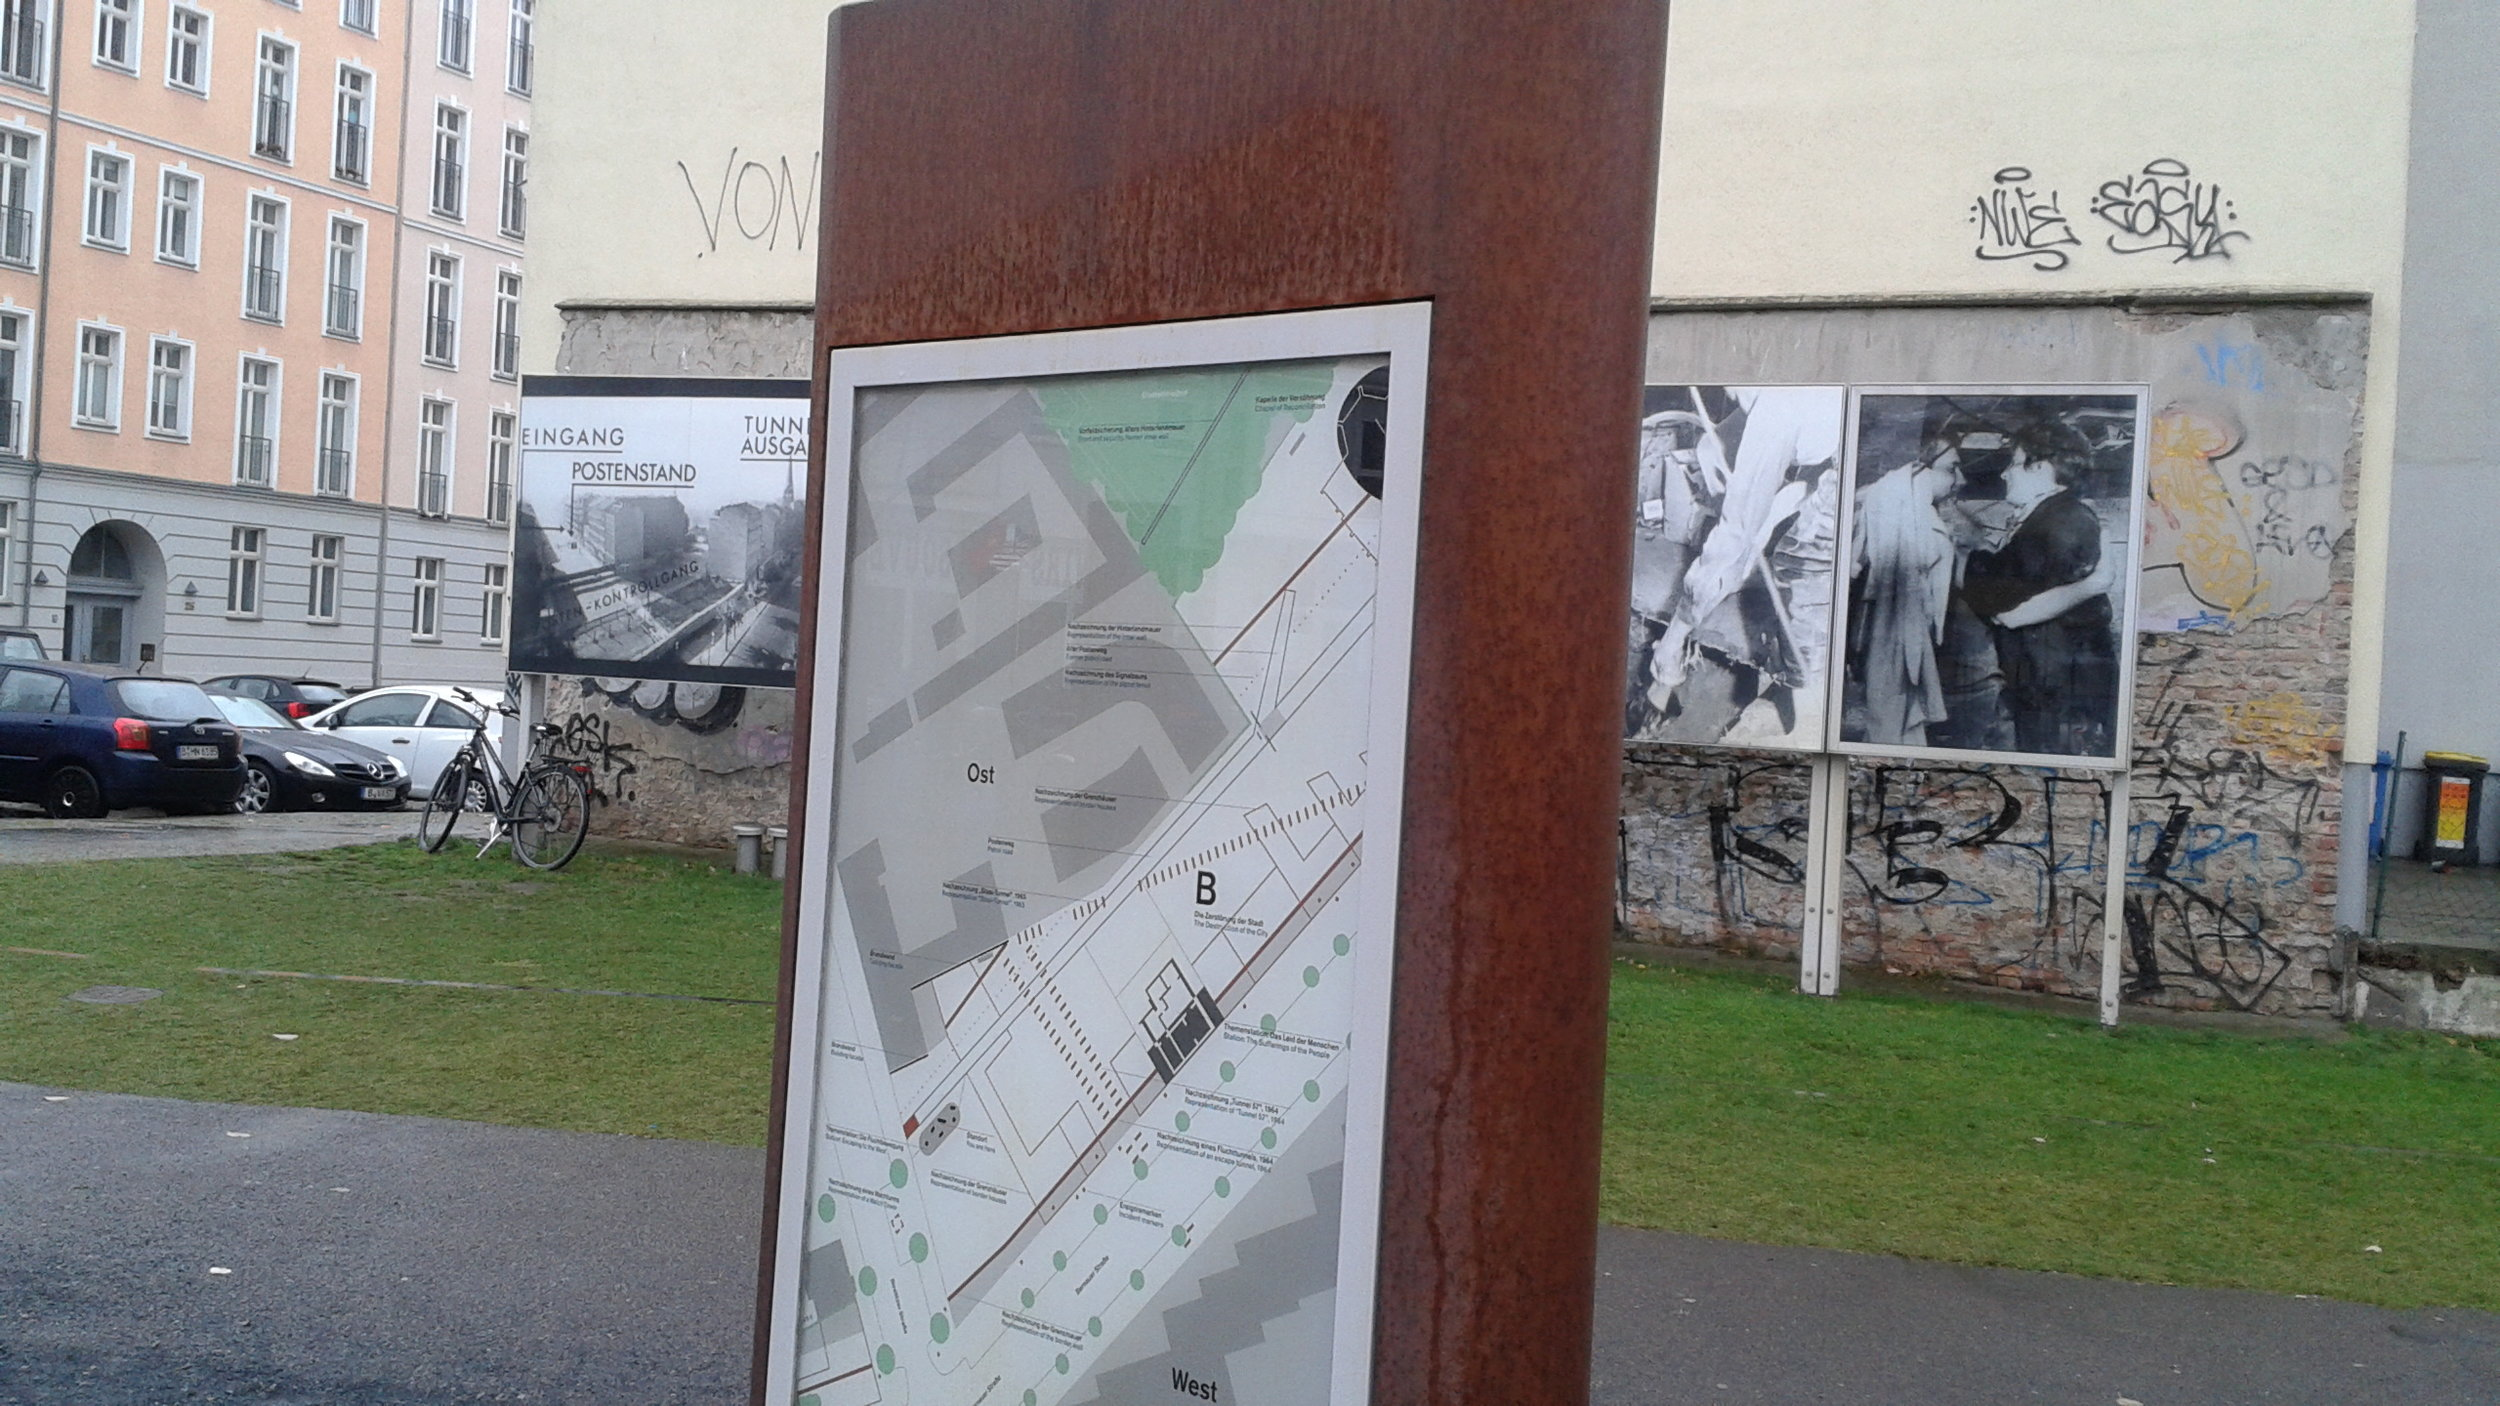 Sign marking where part of the Berlin wall used to bisect the neighborhood.